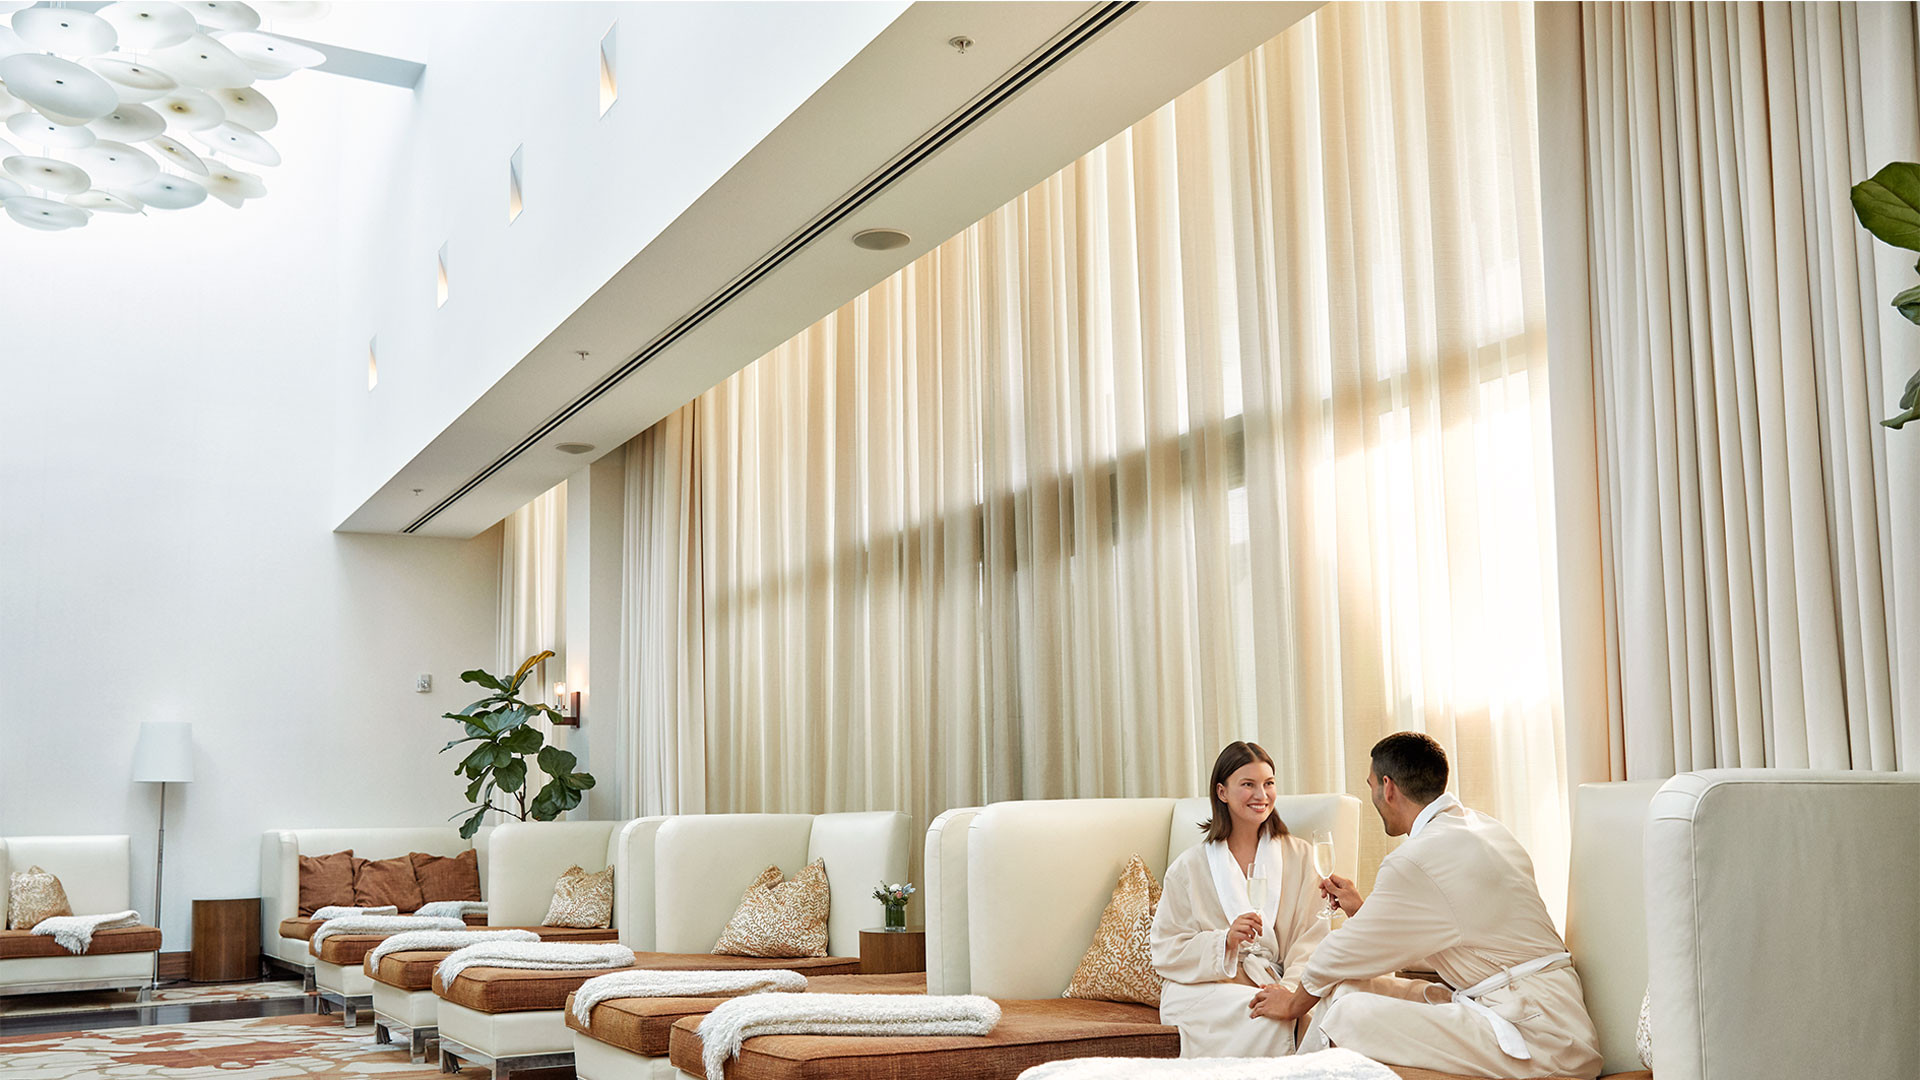 The Ritz-Carlton Toronto | Spa My Blend by Clarins sanctuary and relaxation lounges